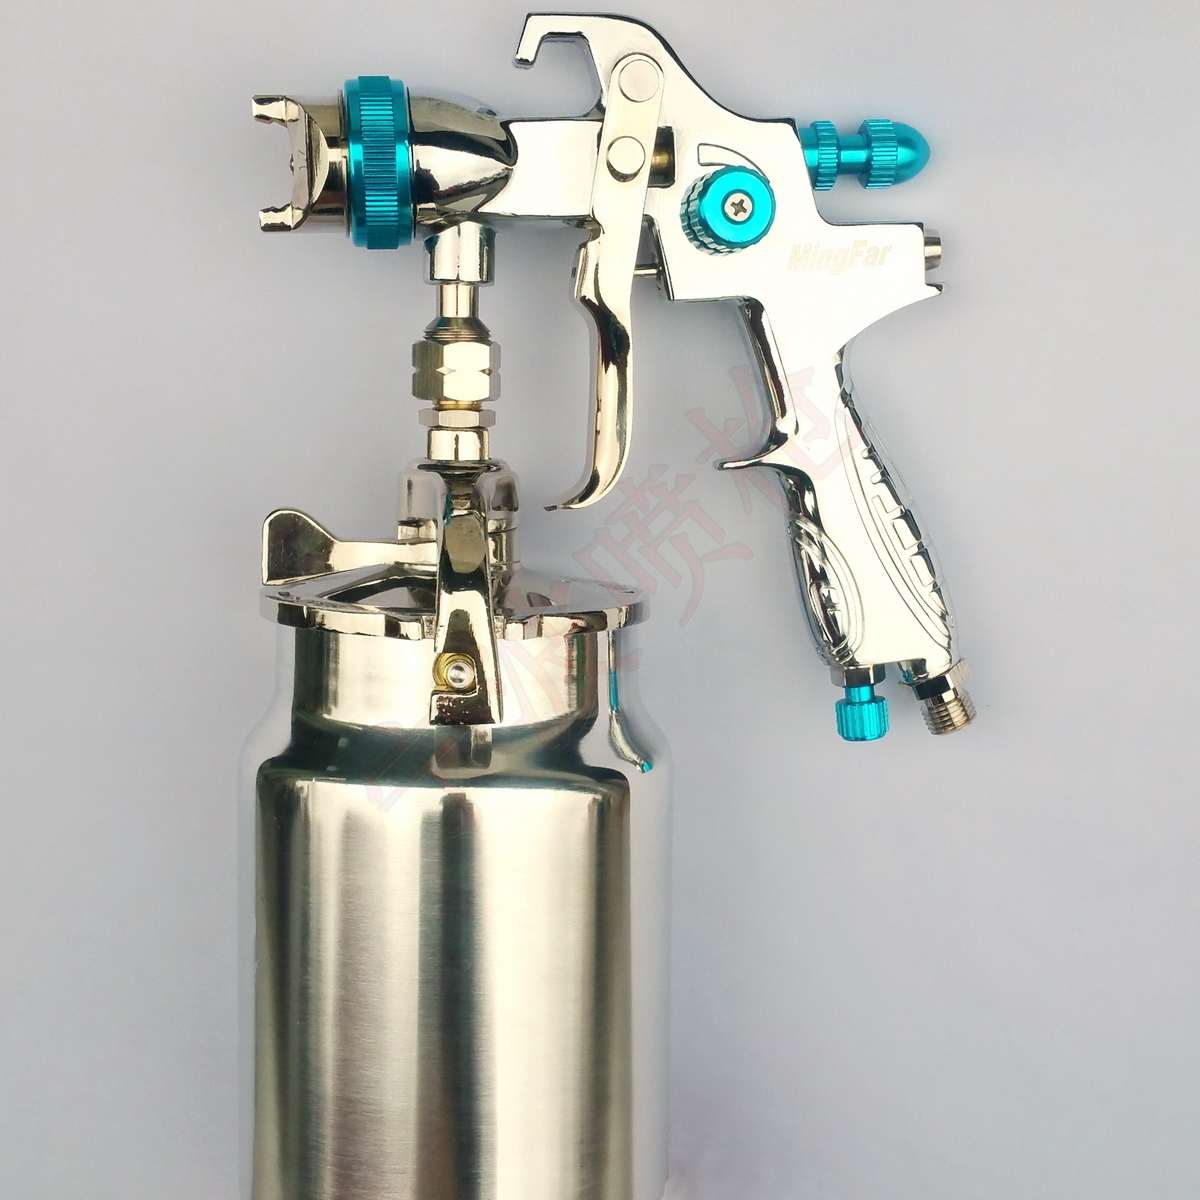 Free shipping Suction feed 1 7mm HVLP Siphon Air Spray gun for car boat furniture Painting